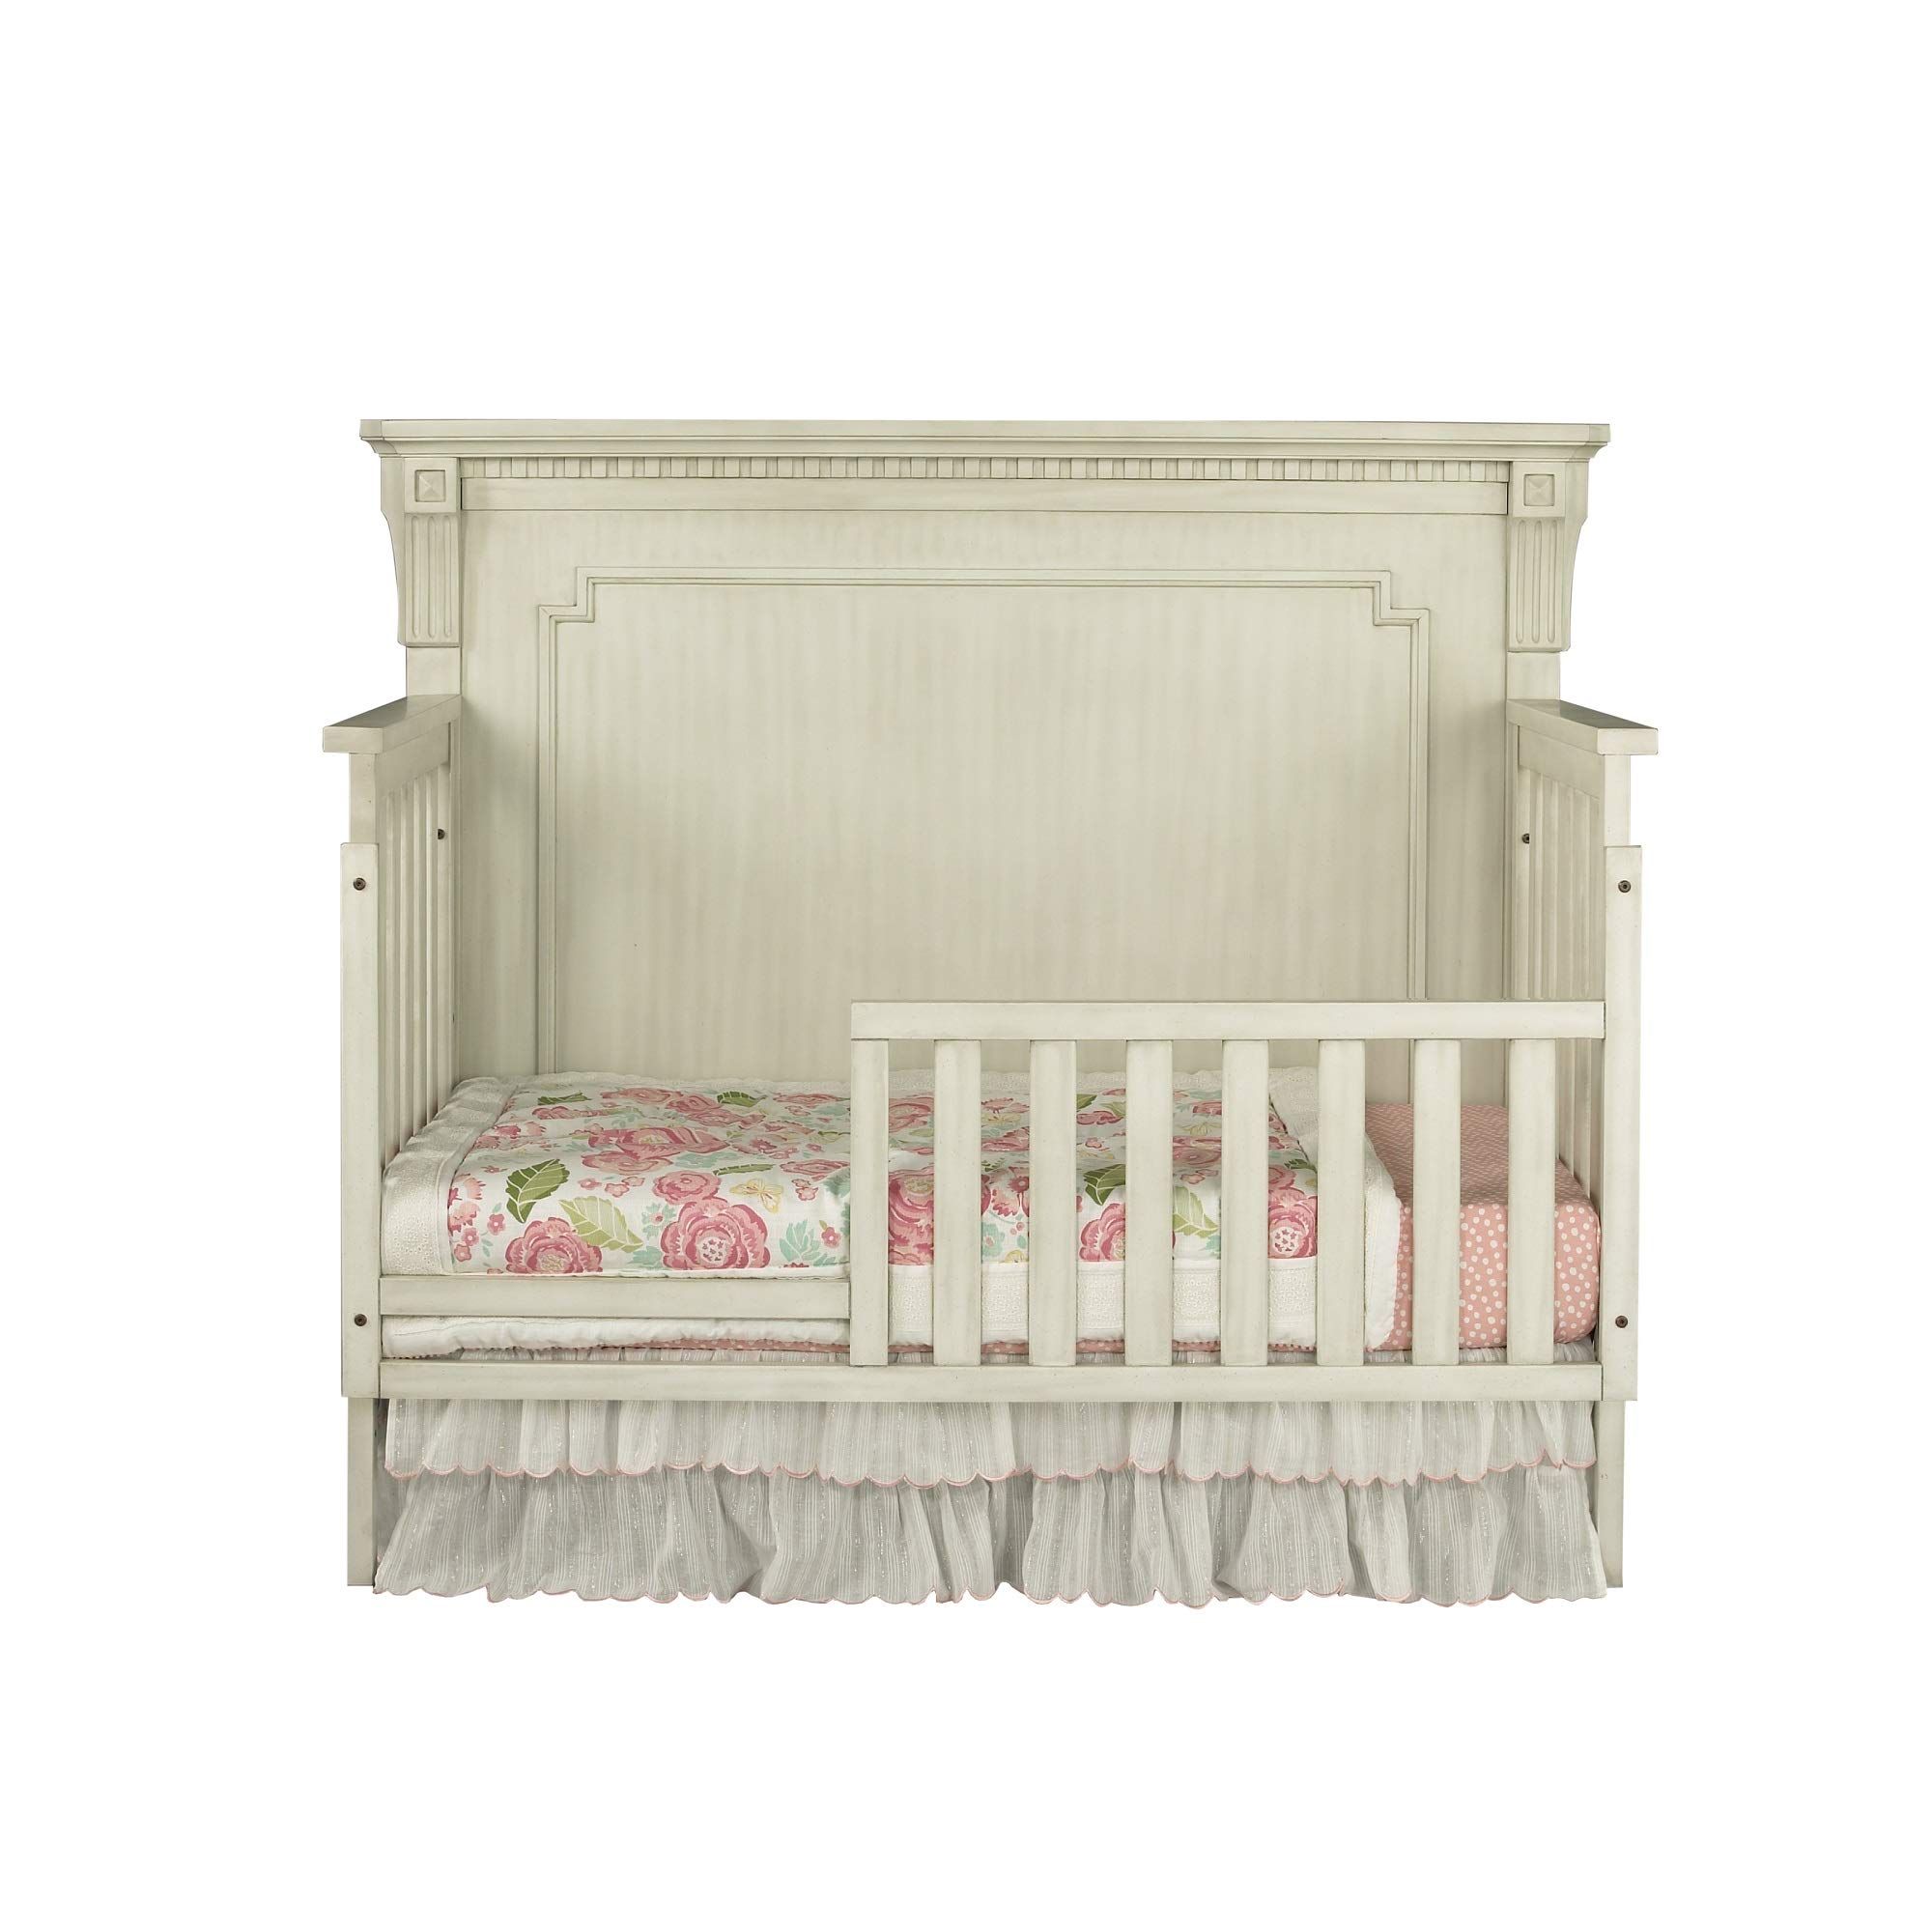 Oxford Baby Mid Century Claremont Guard Rail, Antique White by Oxford Baby (Image #3)